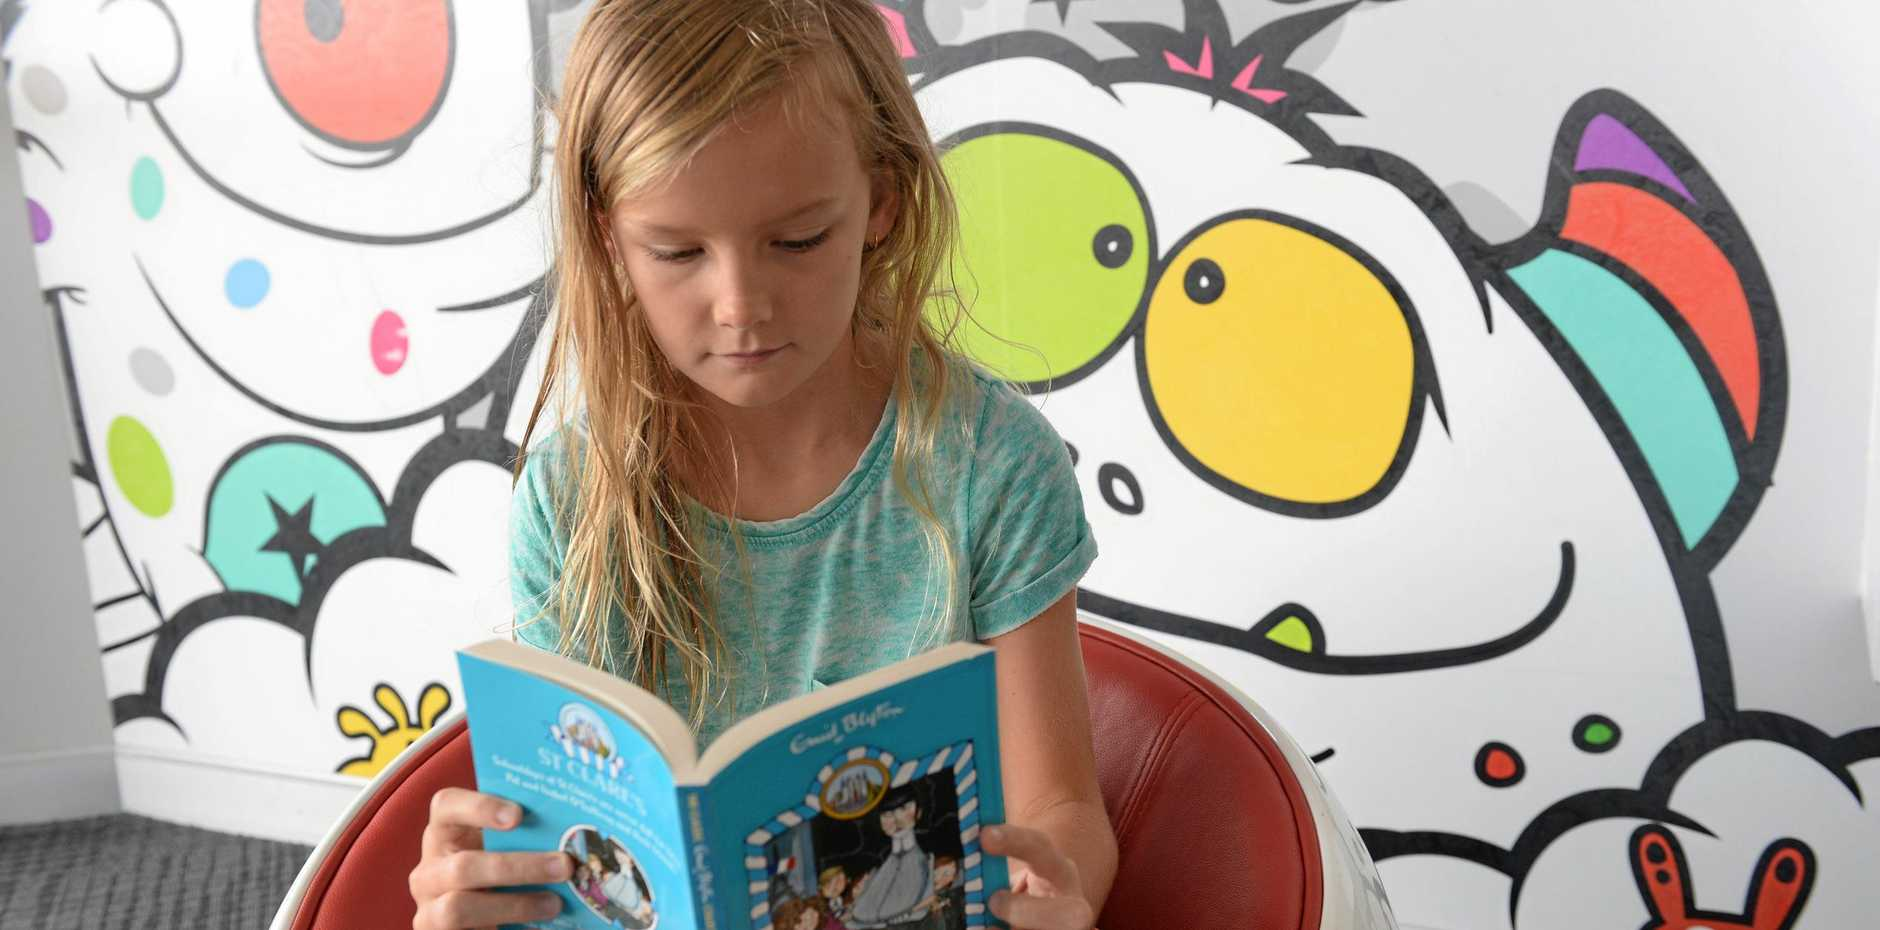 Annabelle Hudson enjoys reading the latest novel, The O'Sullivan Twins at St Clare's, from the Enid Blyton collection at the Dudley Denny City Library.